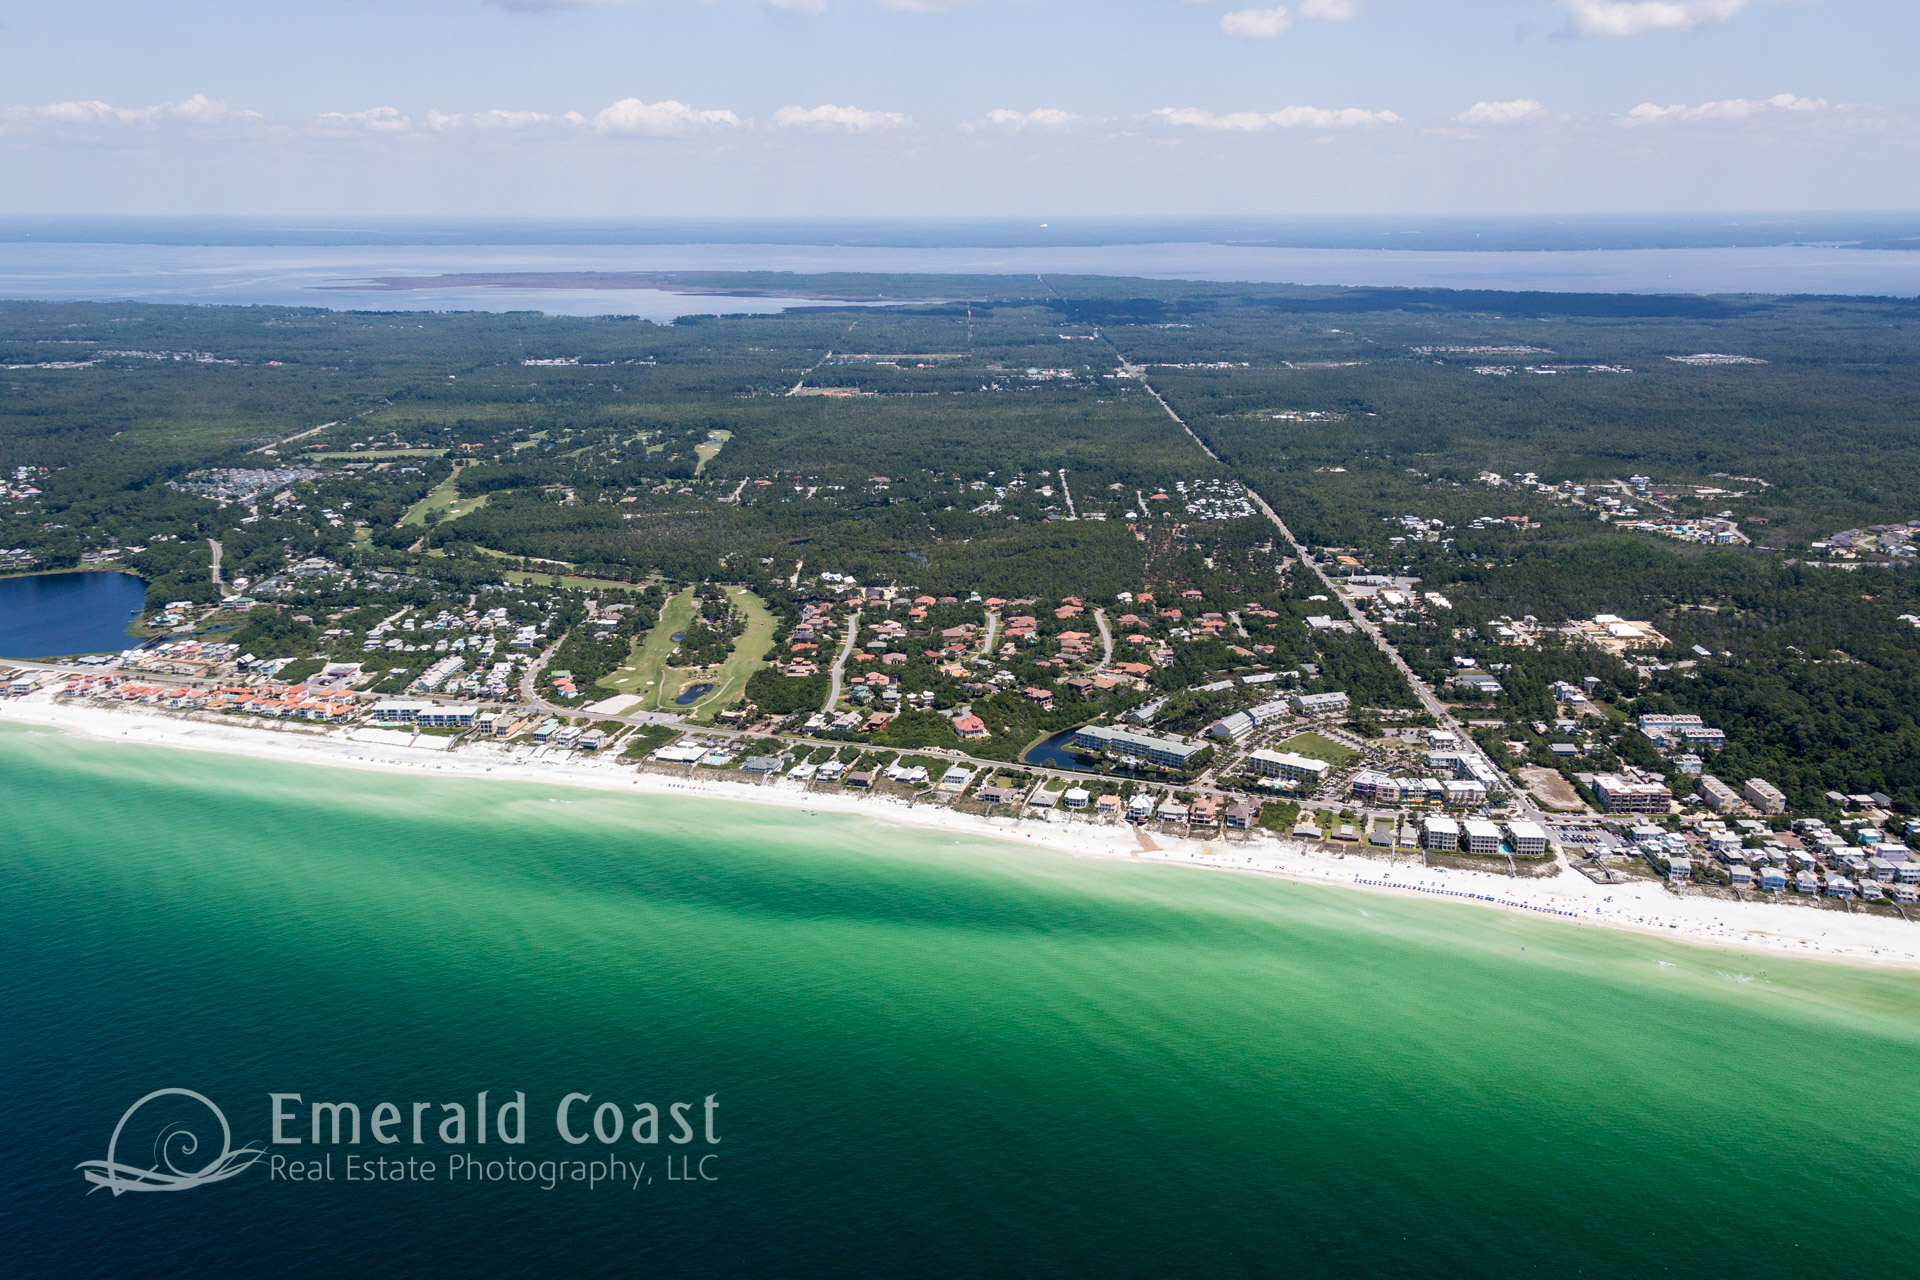 Aerial View of Co Hwy 30A with Gulf Place Santa Rosa Beach, Florida